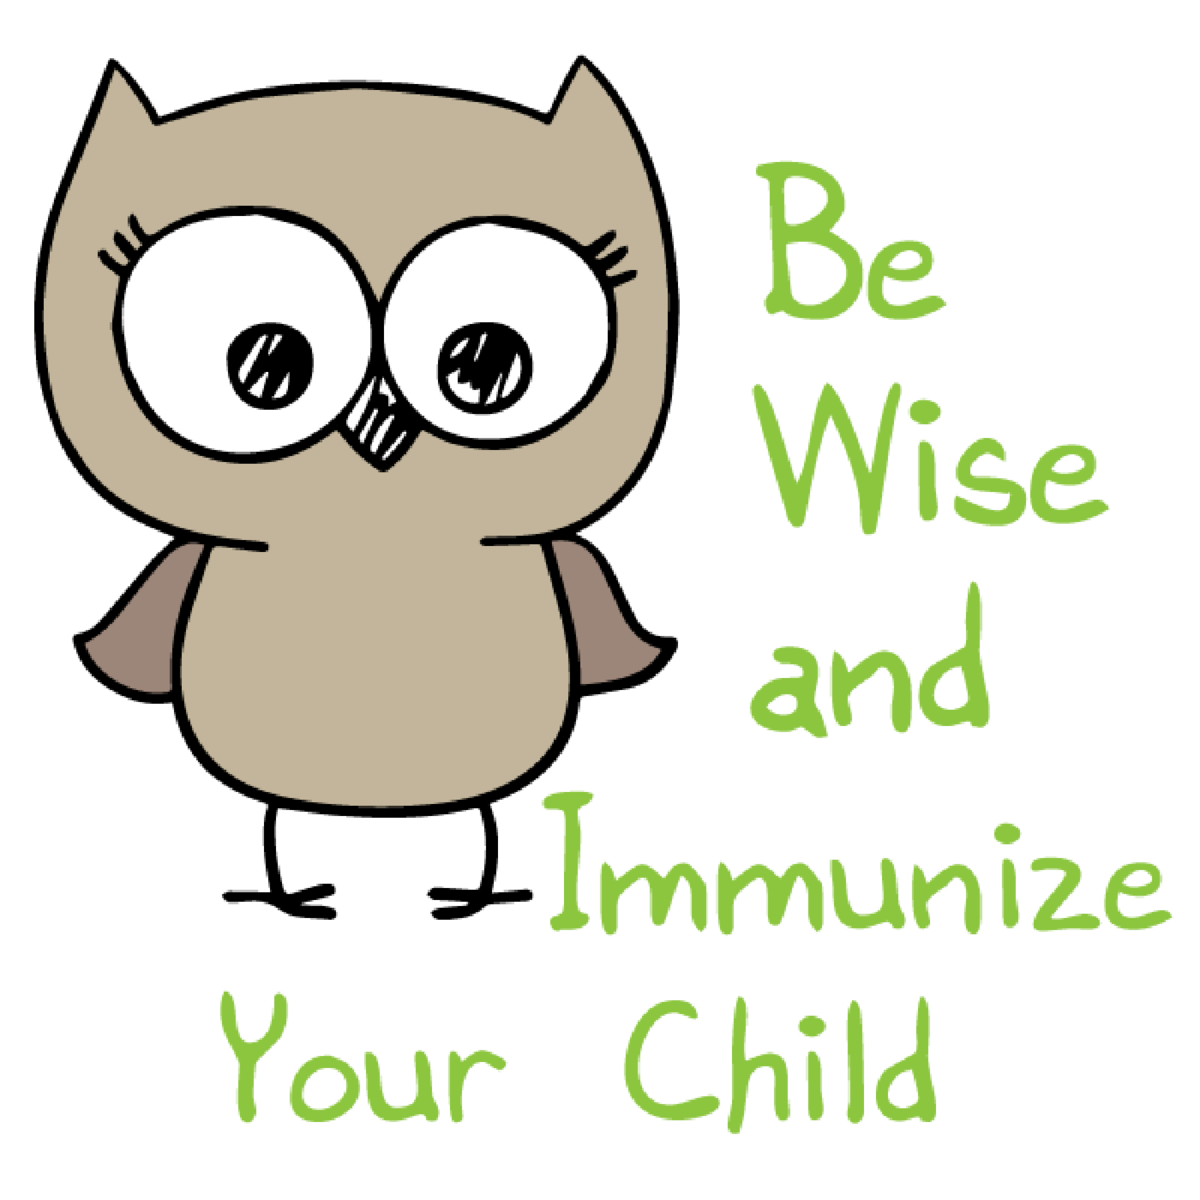 Owl- Be Wise and Immunize your child